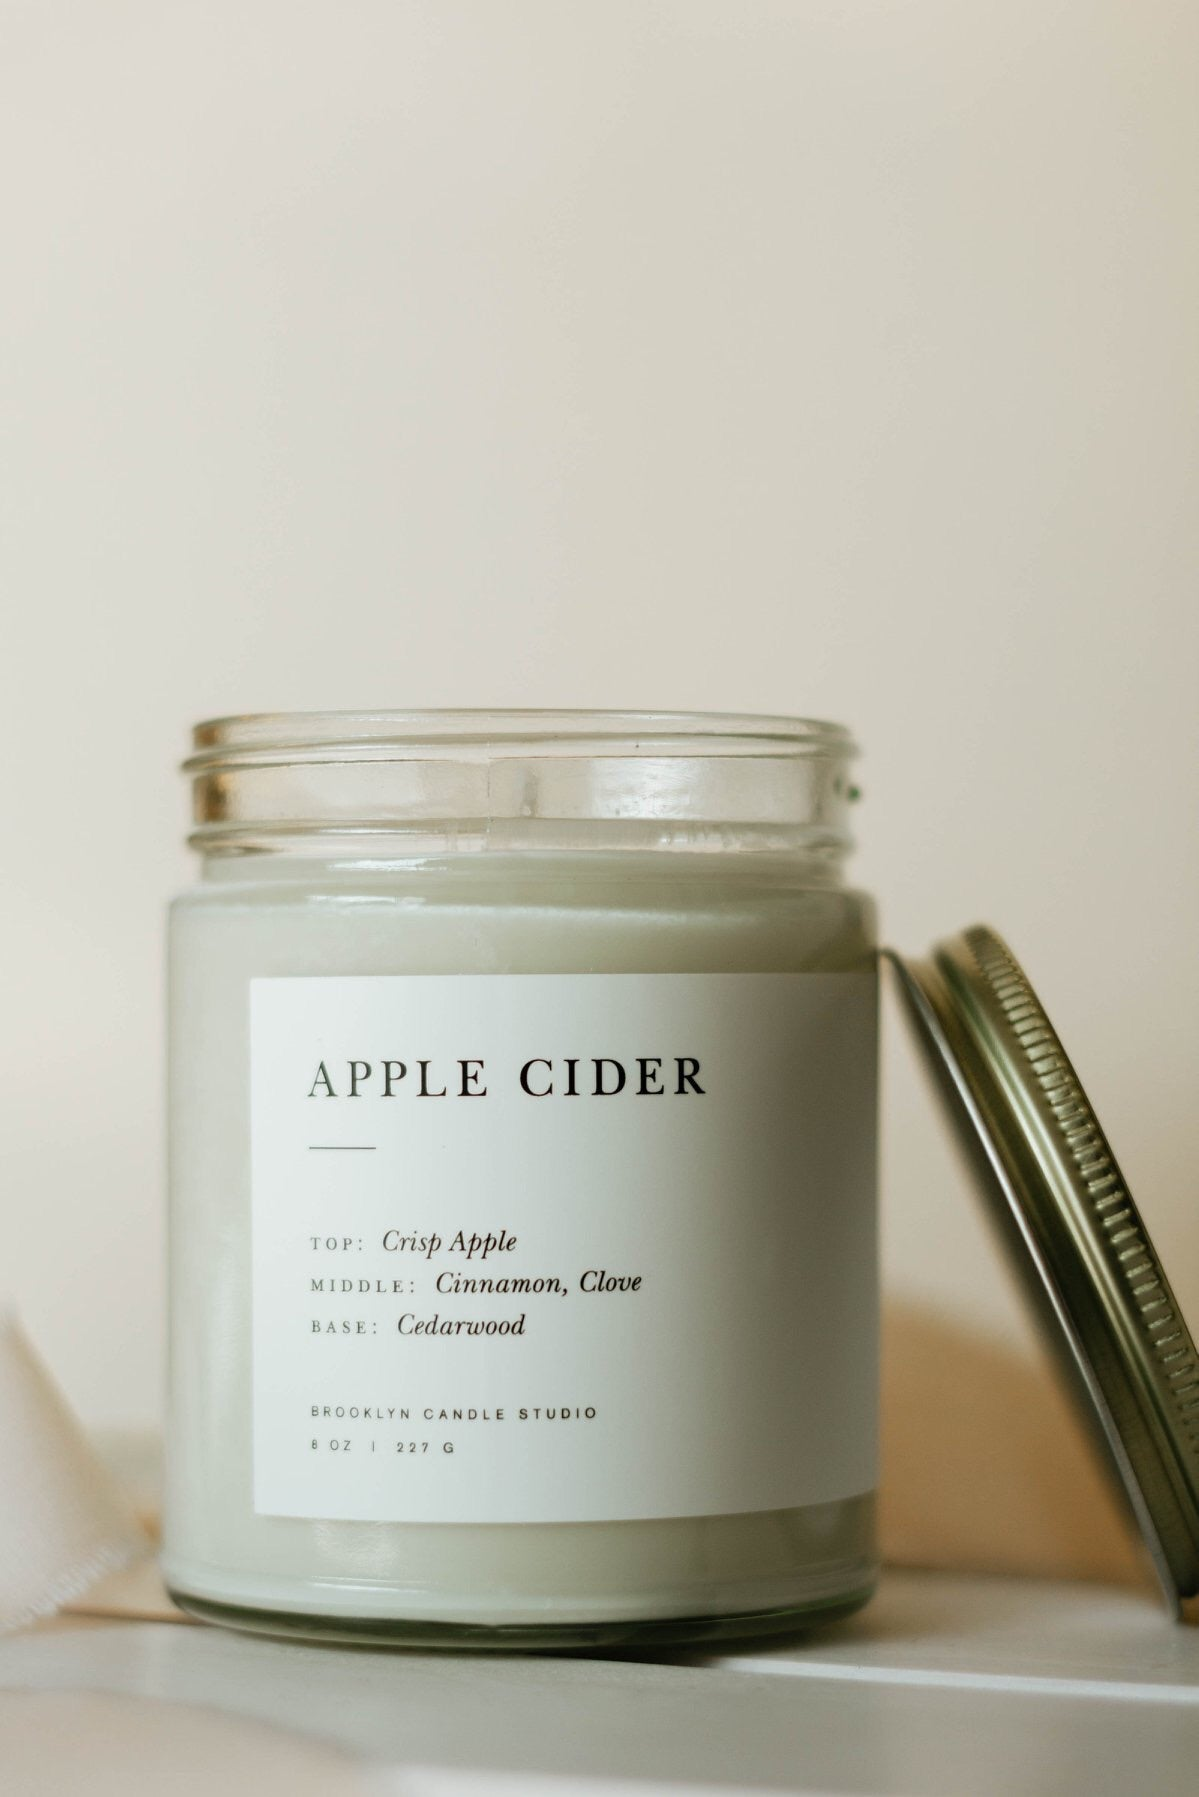 Apple Cider Minimalist Candle